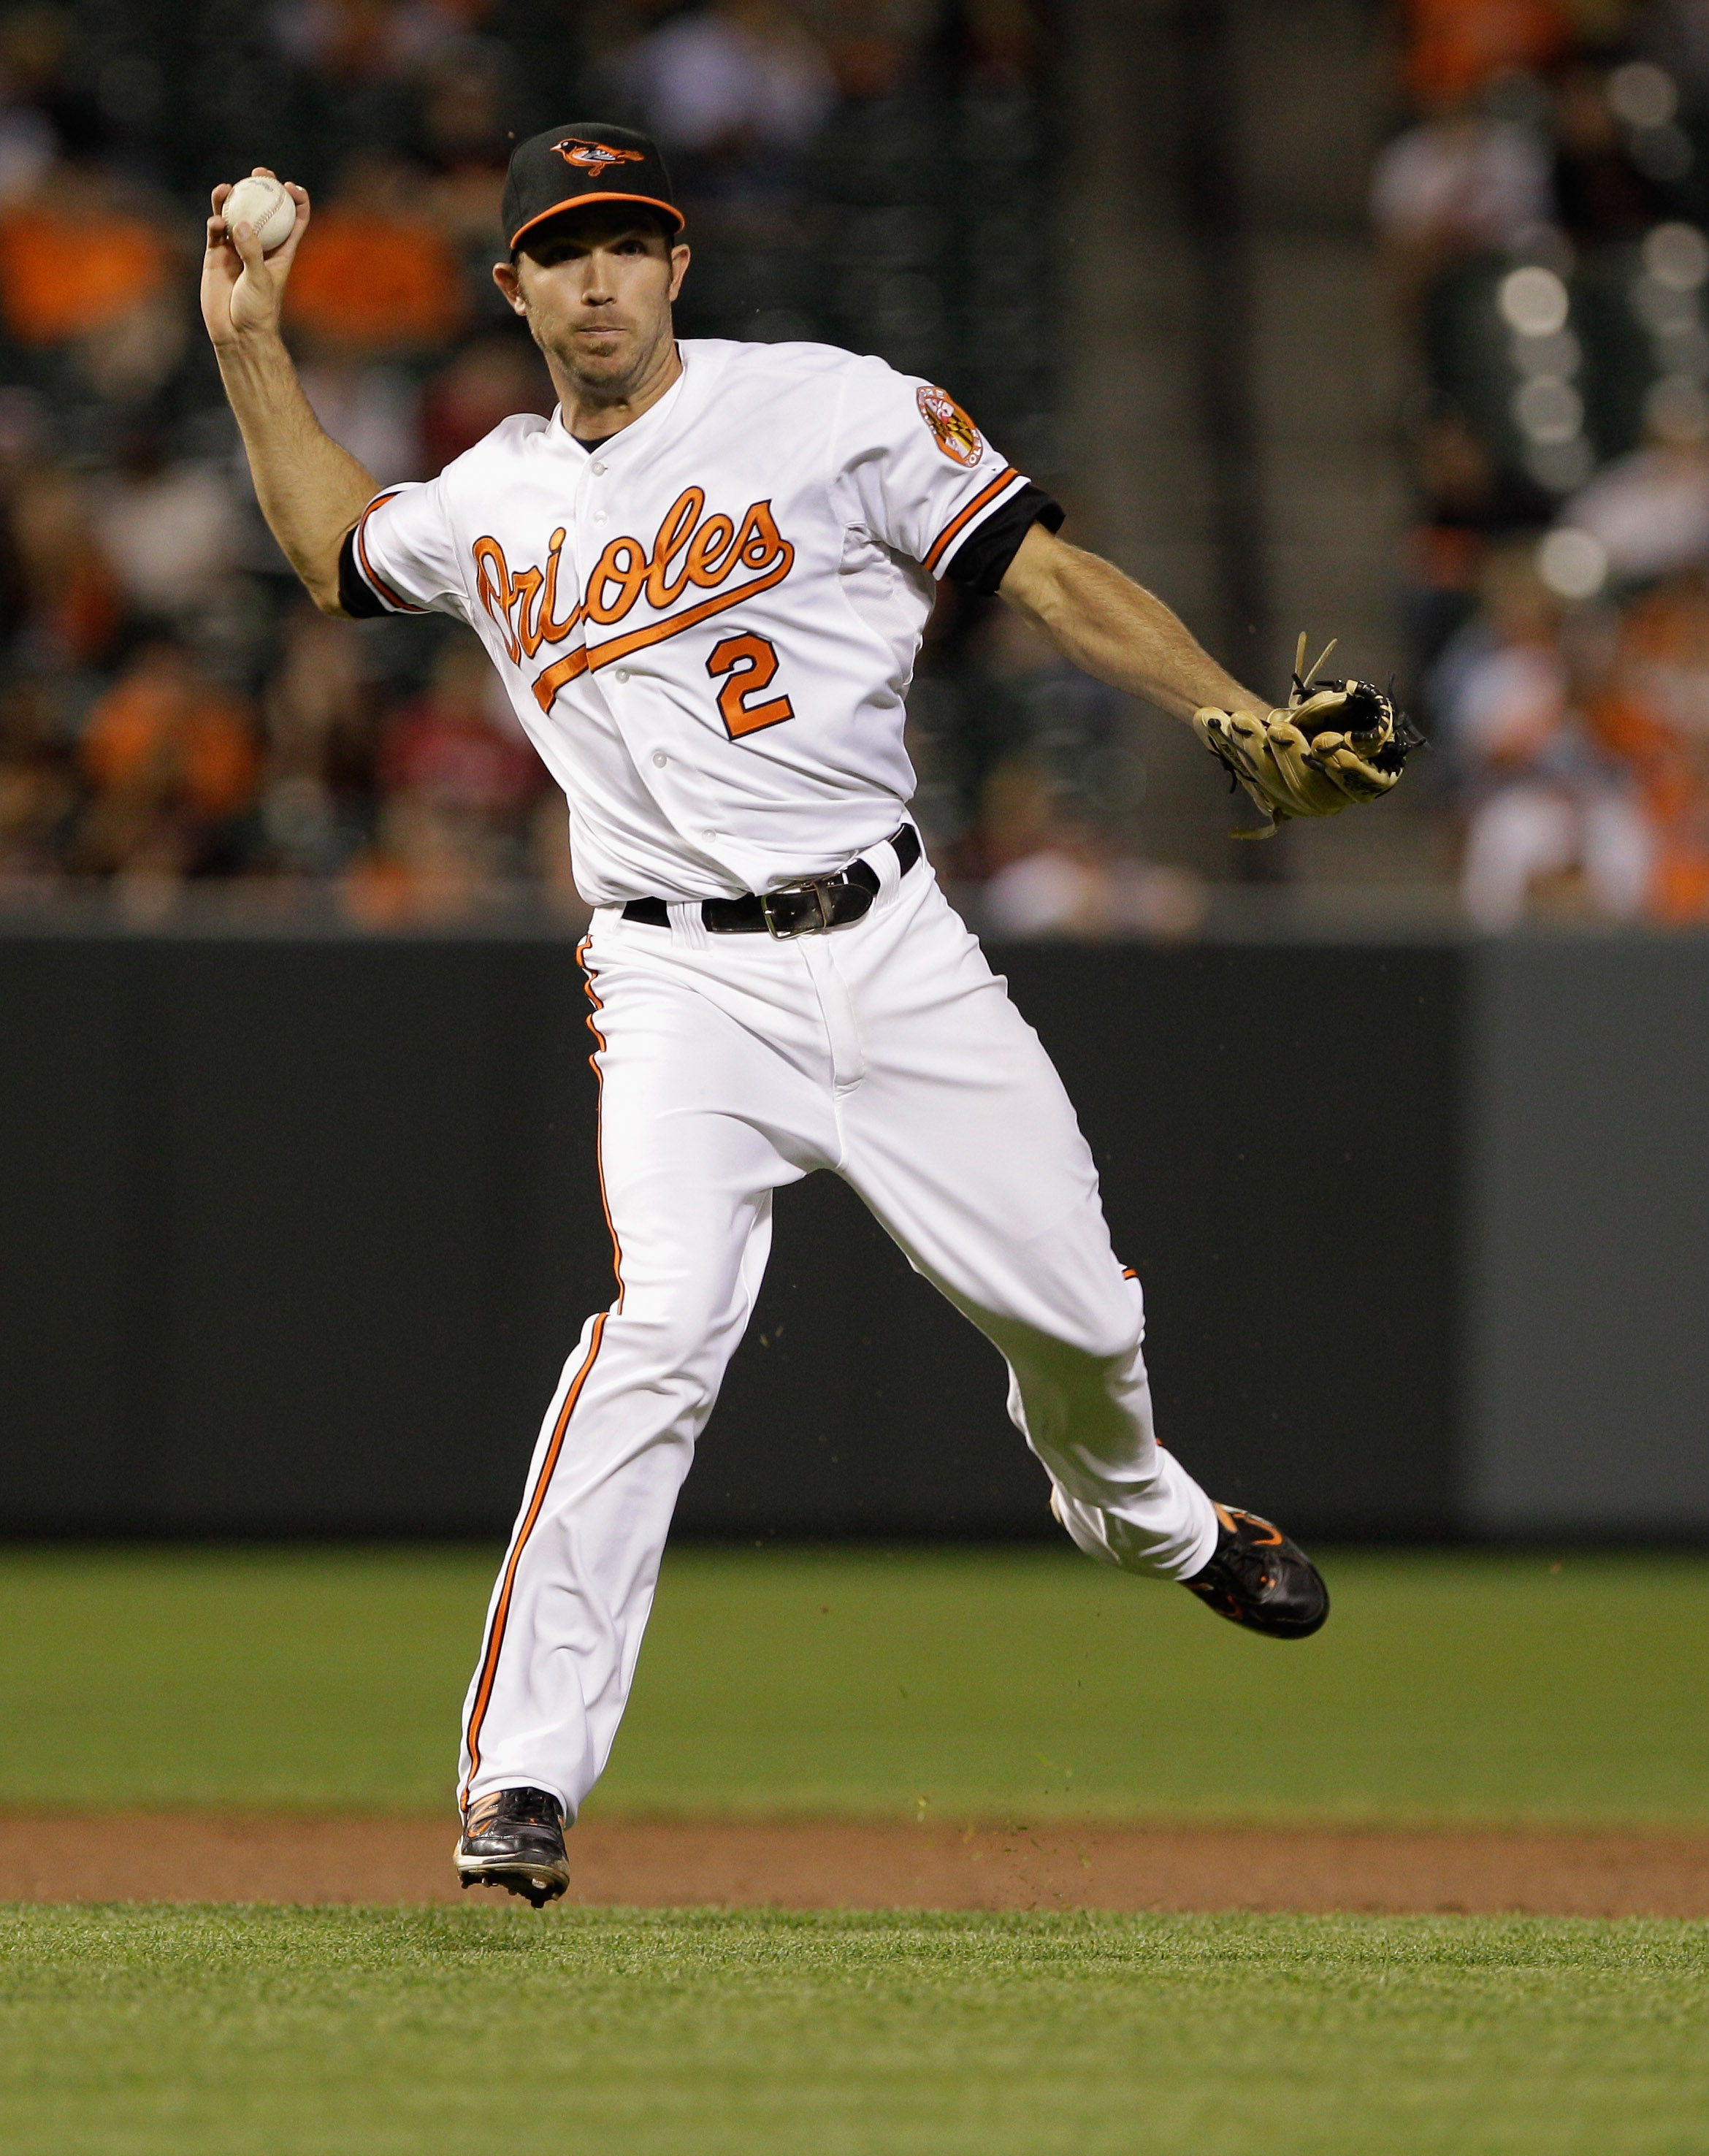 BALTIMORE, MD - MAY 12: J.J. Hardy #2 of the Baltimore Orioles in action against the Seattle Mariners at Oriole Park at Camden Yards on May 12, 2011 in Baltimore, Maryland.  (Photo by Rob Carr/Getty Images)